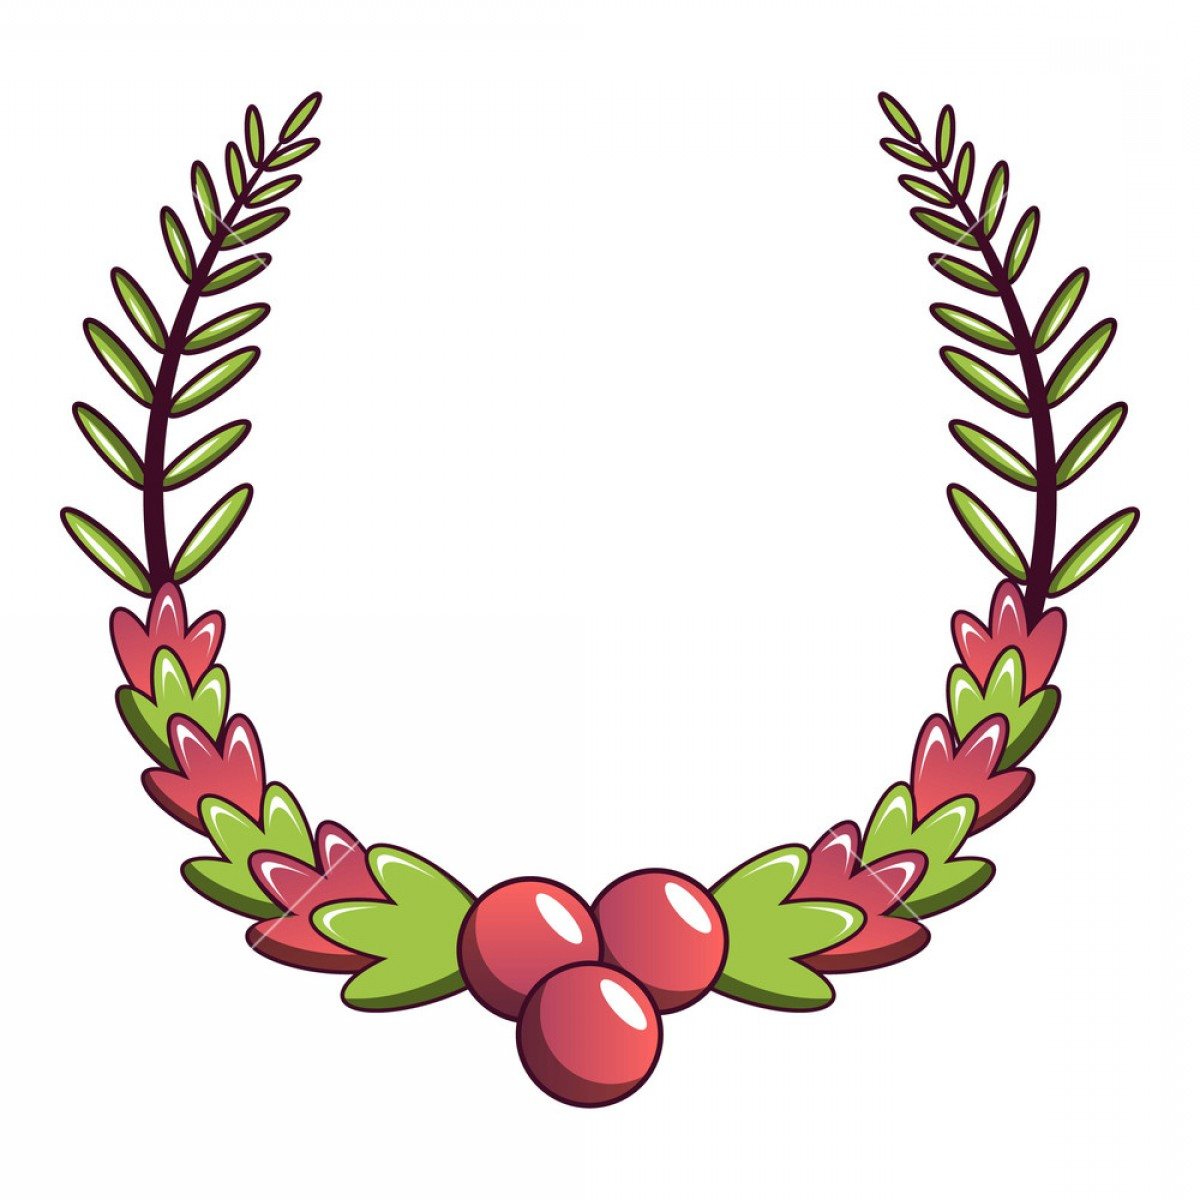 Floral Laurel Wreath Vector: Laurel Wreath Icon Cartoon Illustration Of Laurel Wreath Vector Icon For Web Sgsxtmjogyqa